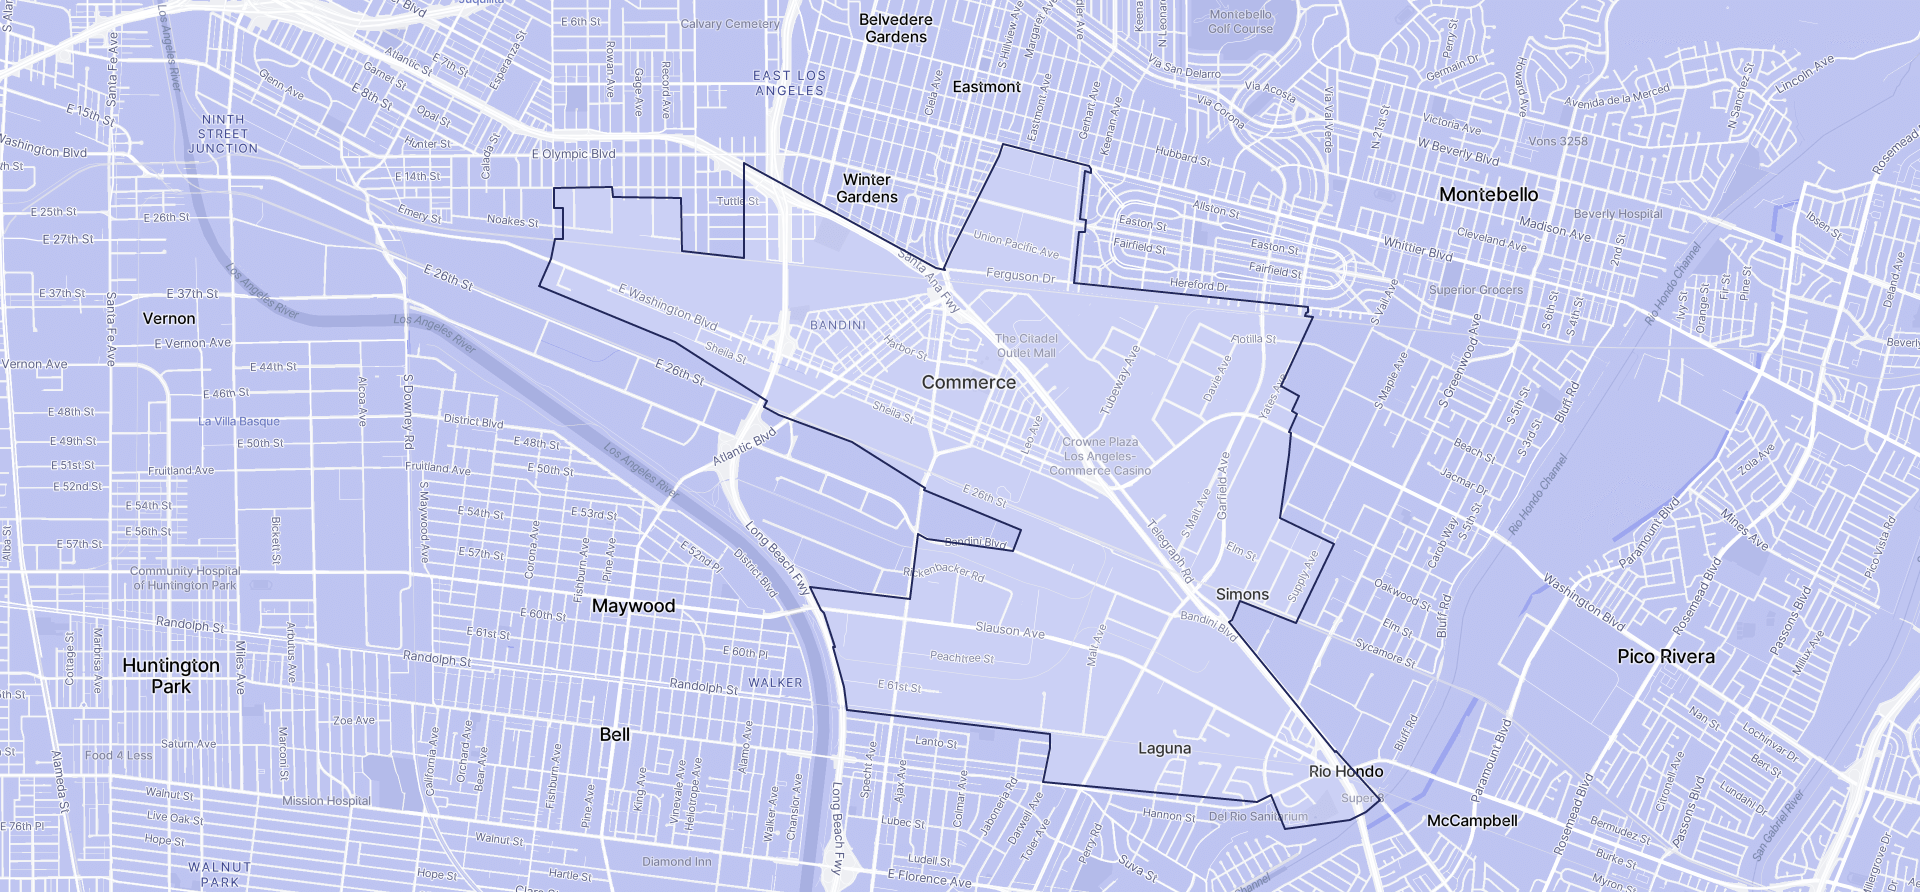 Image of Commerce boundaries on a map.